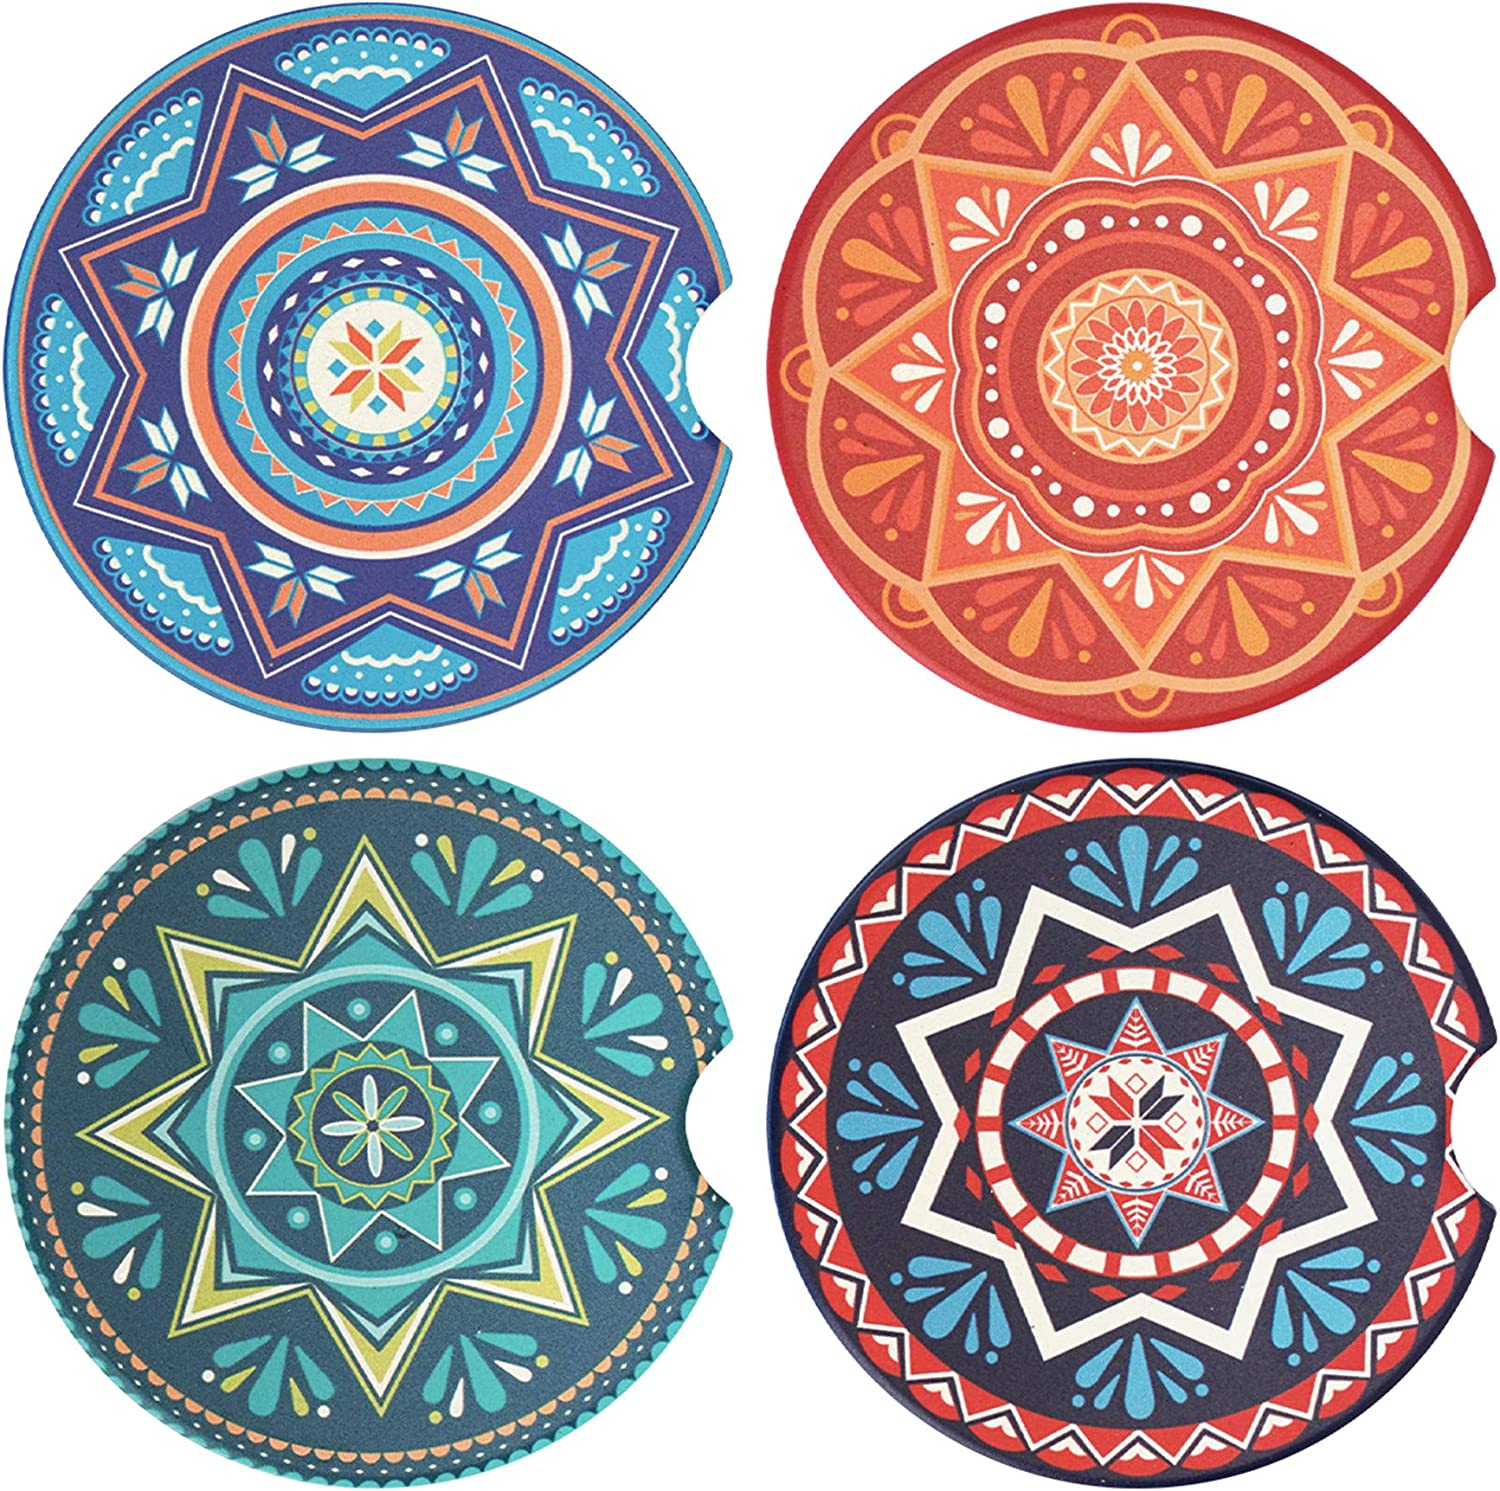 tifanso Atlanta Mall 4 Pack New product type Car Coasters Coa Cup Ceramic Absorbent Holder